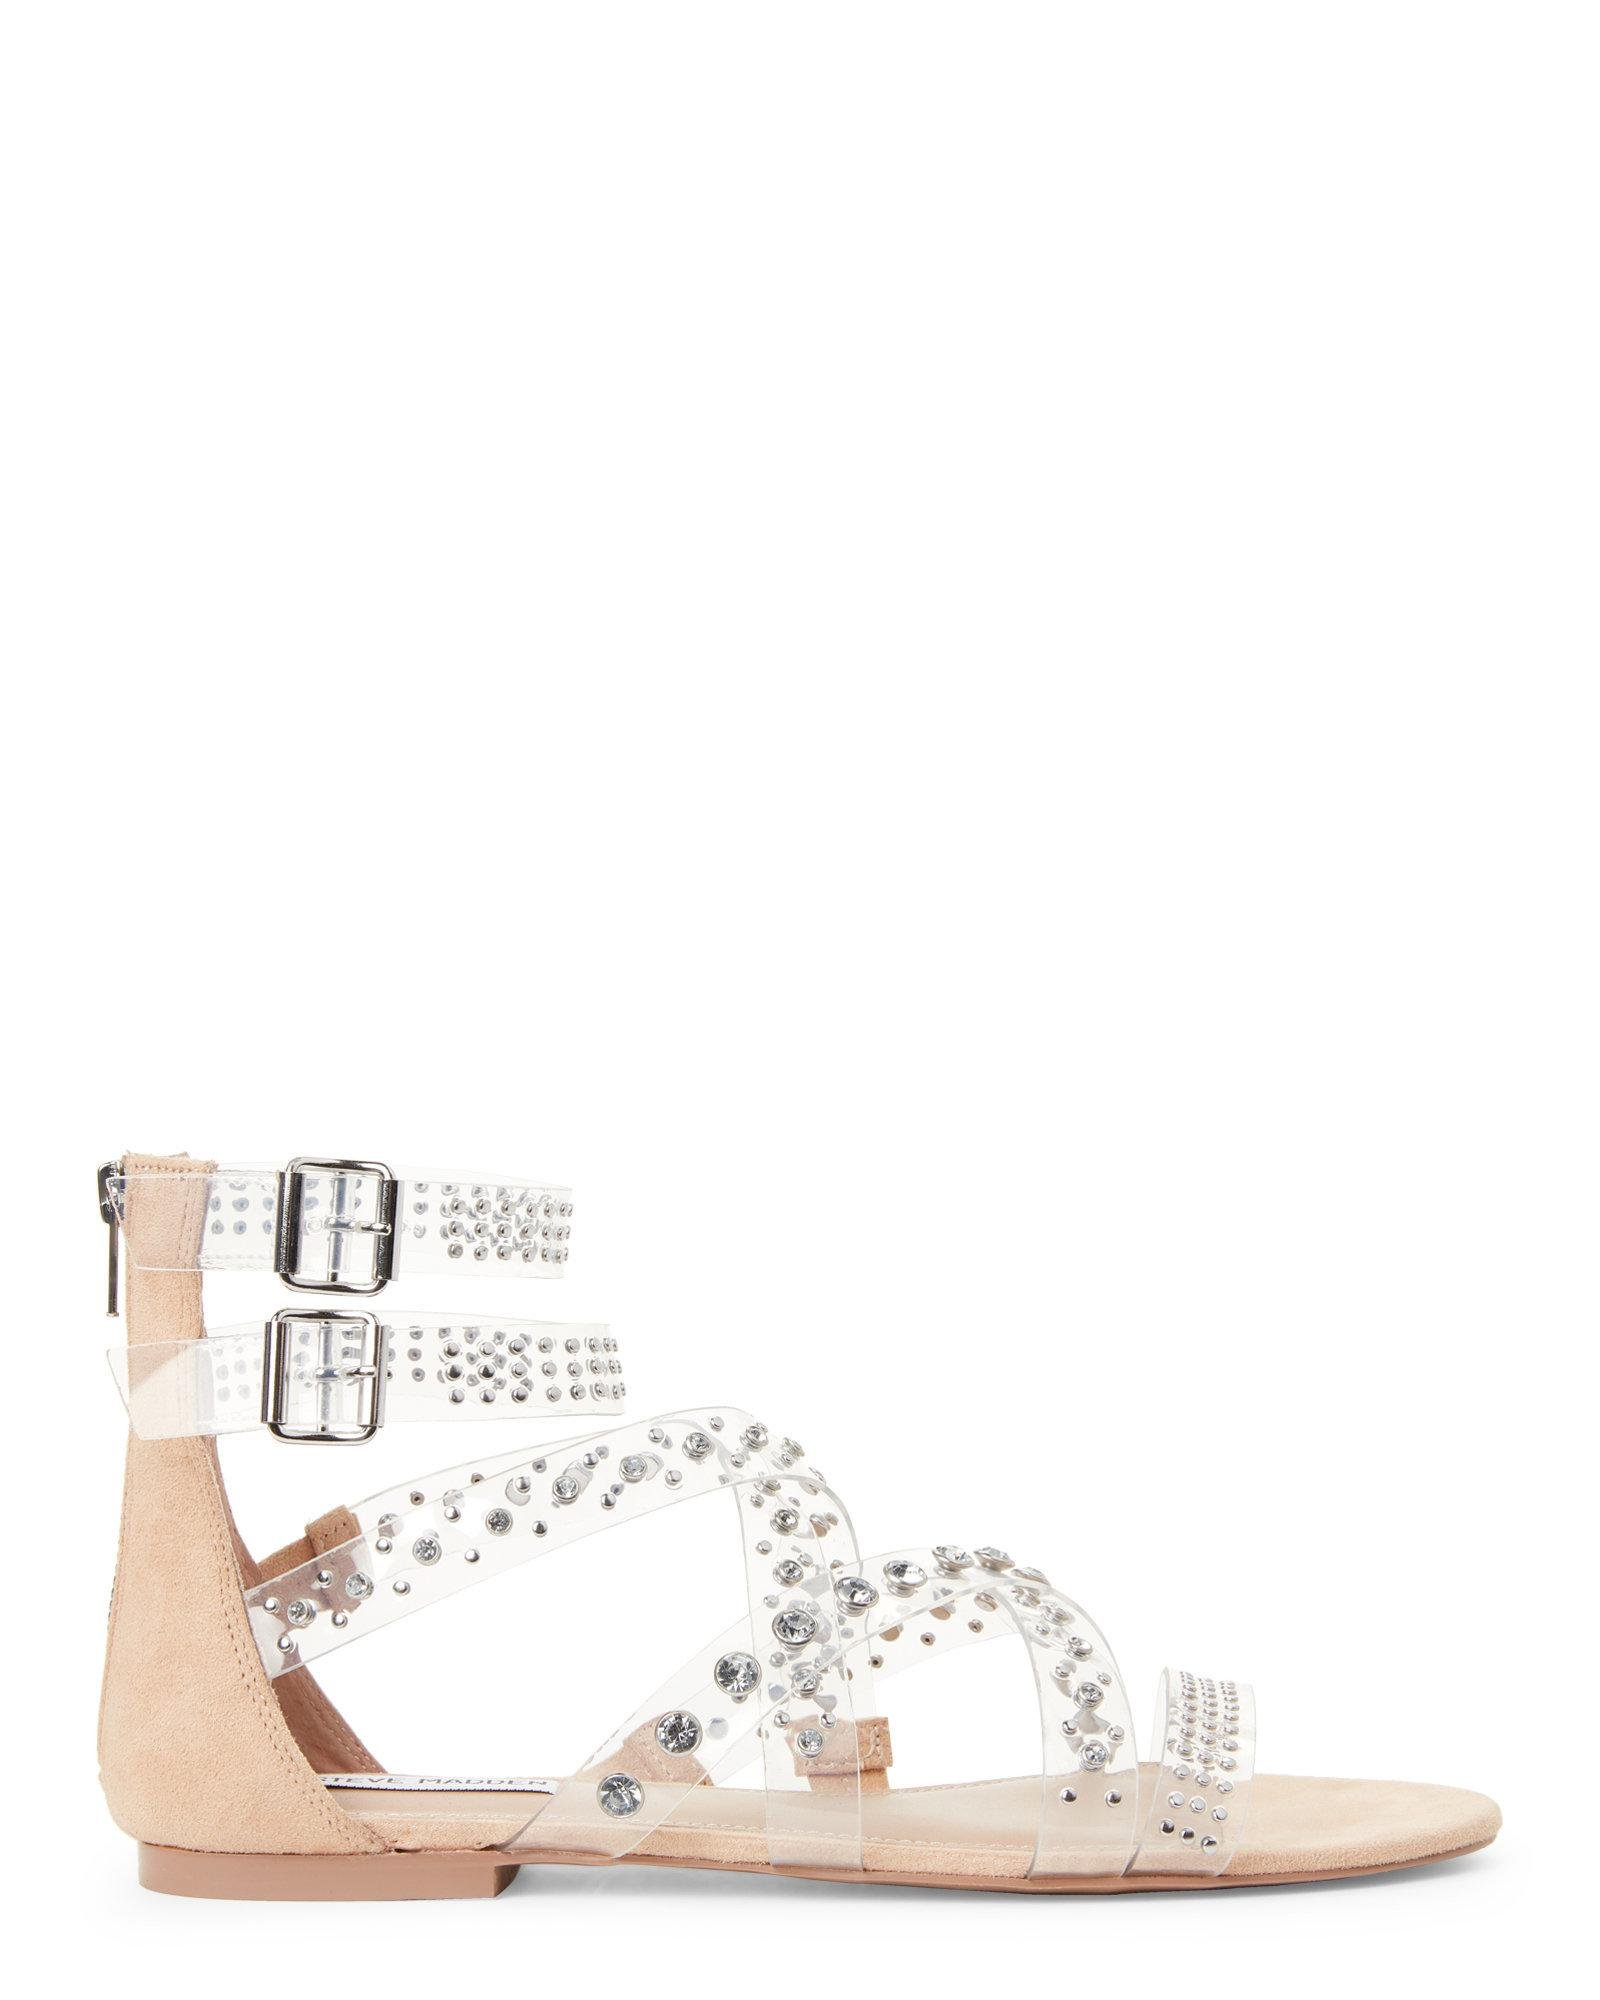 89d50901c37 Steve Madden Multicolor Clear Shift Pvc Studded Strappy Gladiator Sandals